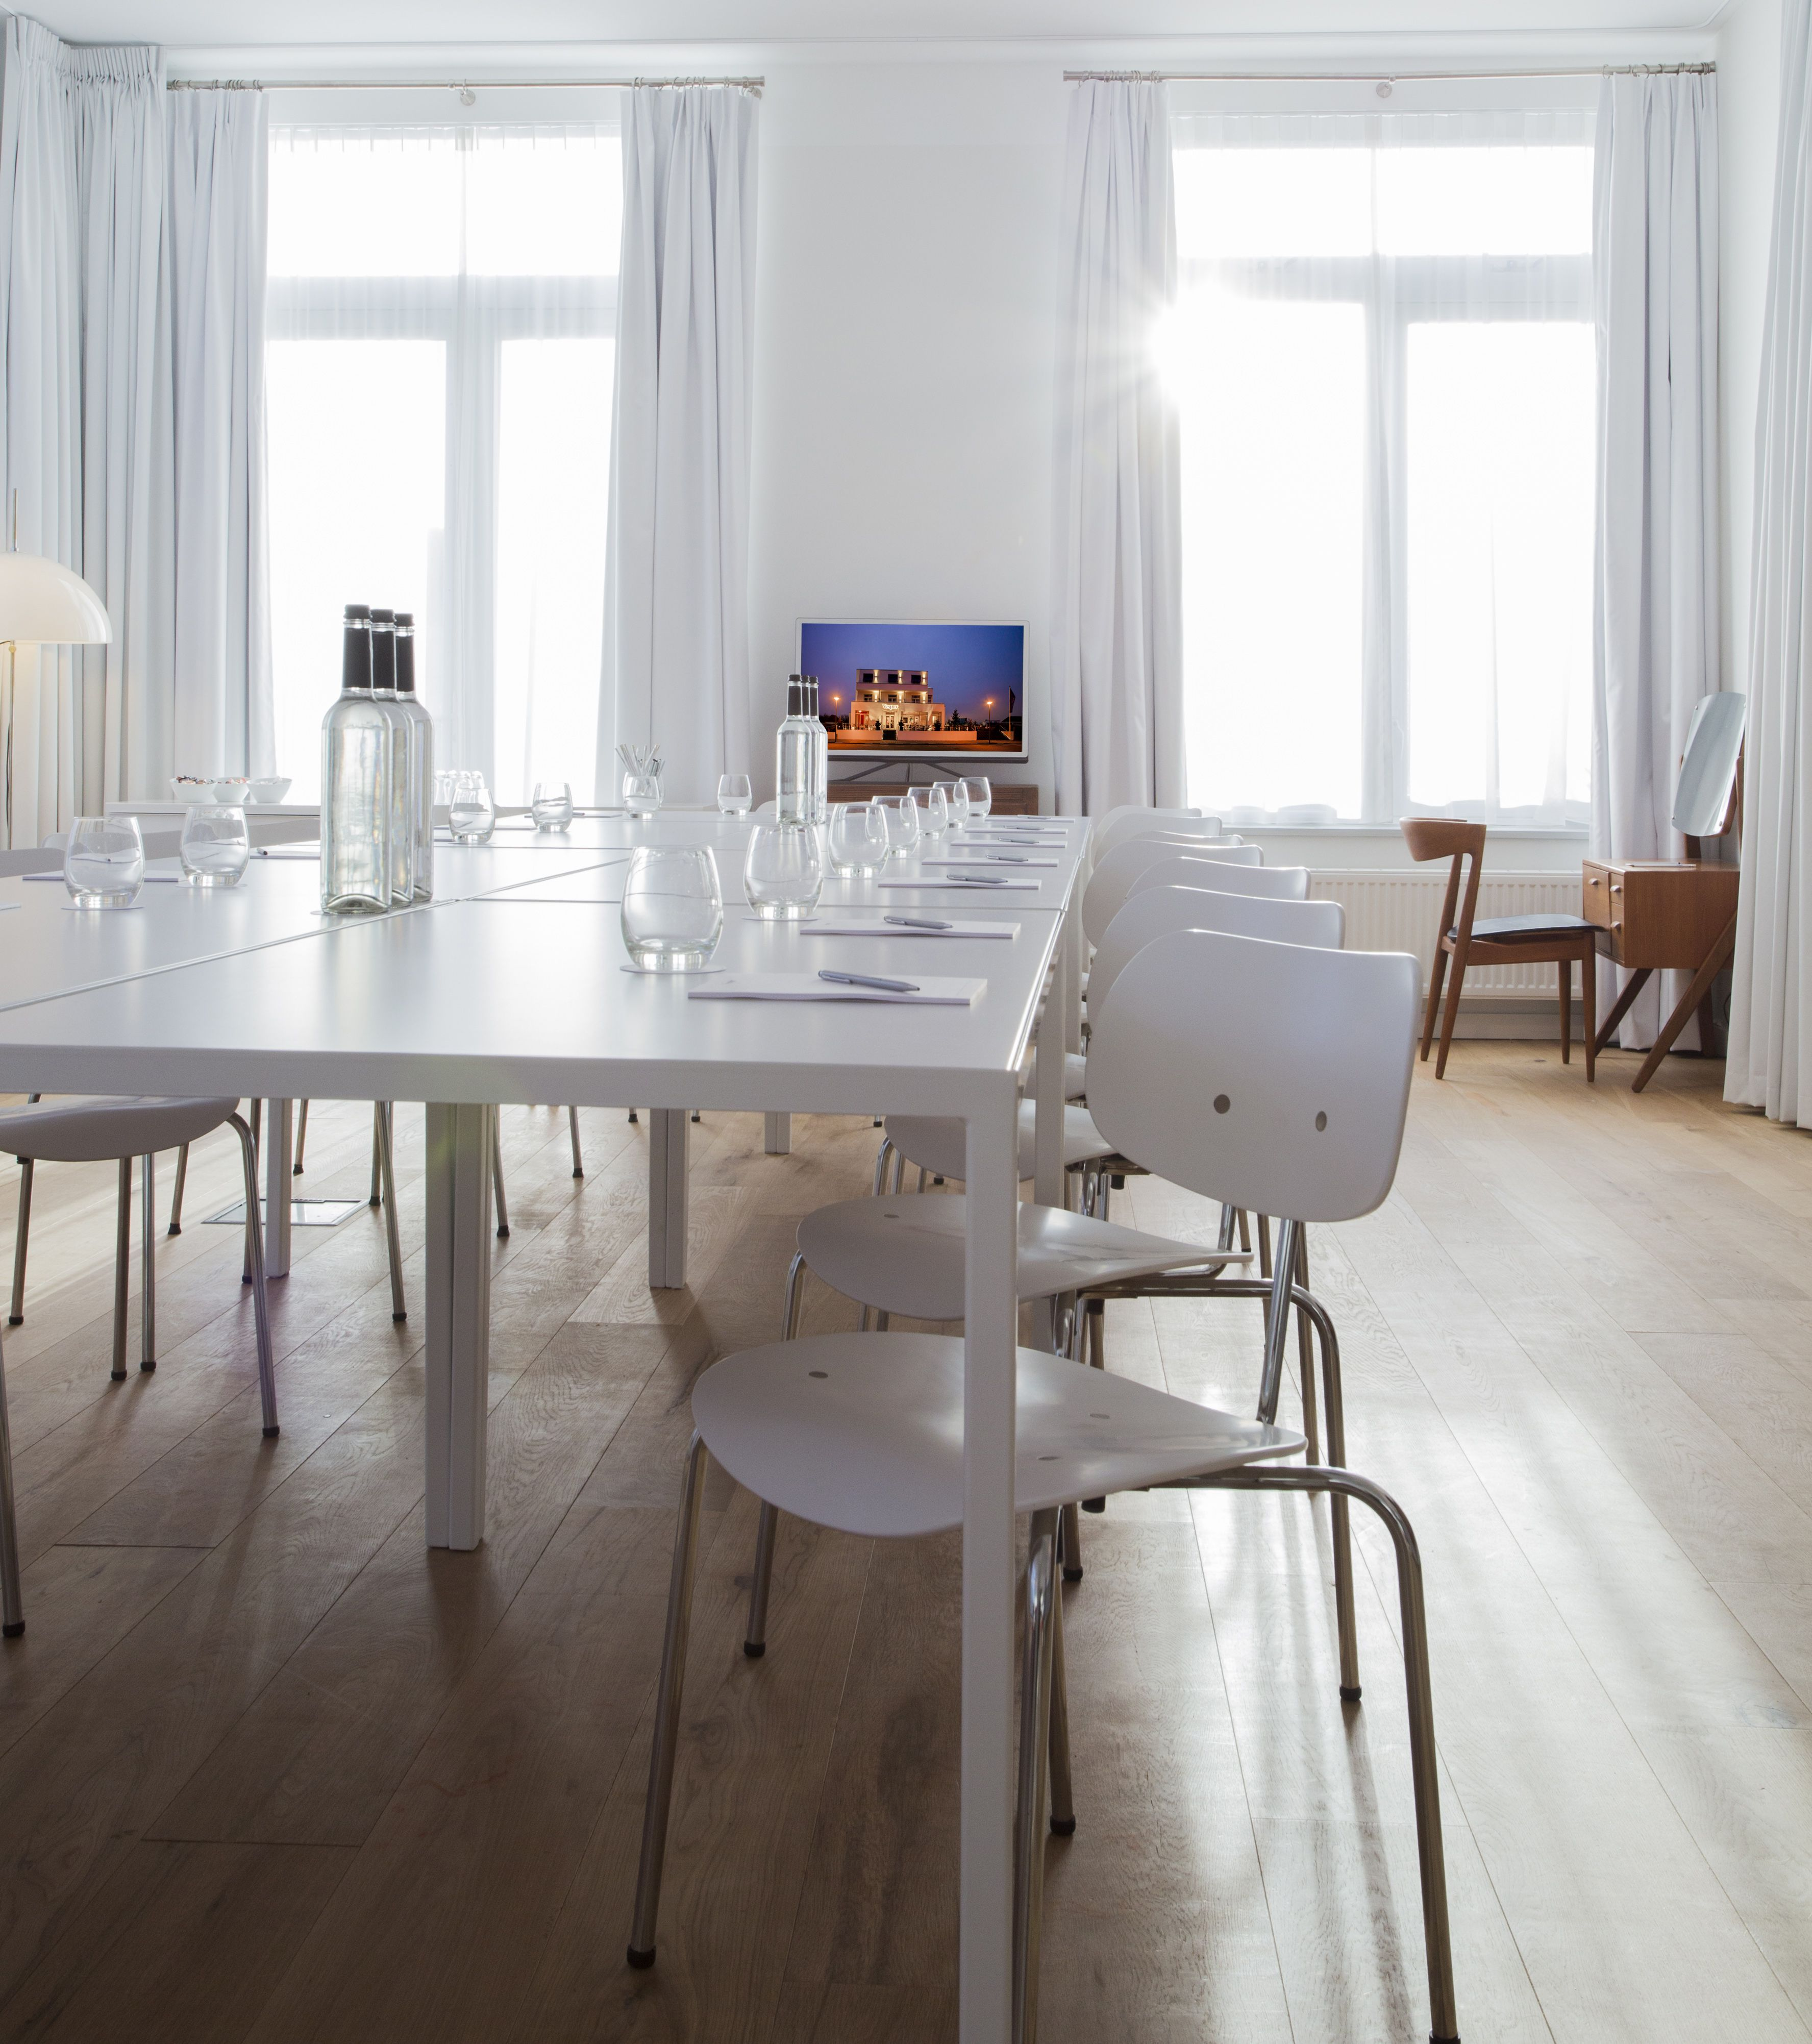 The Loft' The Loft Provides Room For 11 To 24 Peopleplease Cool Dining Room Manager Design Ideas